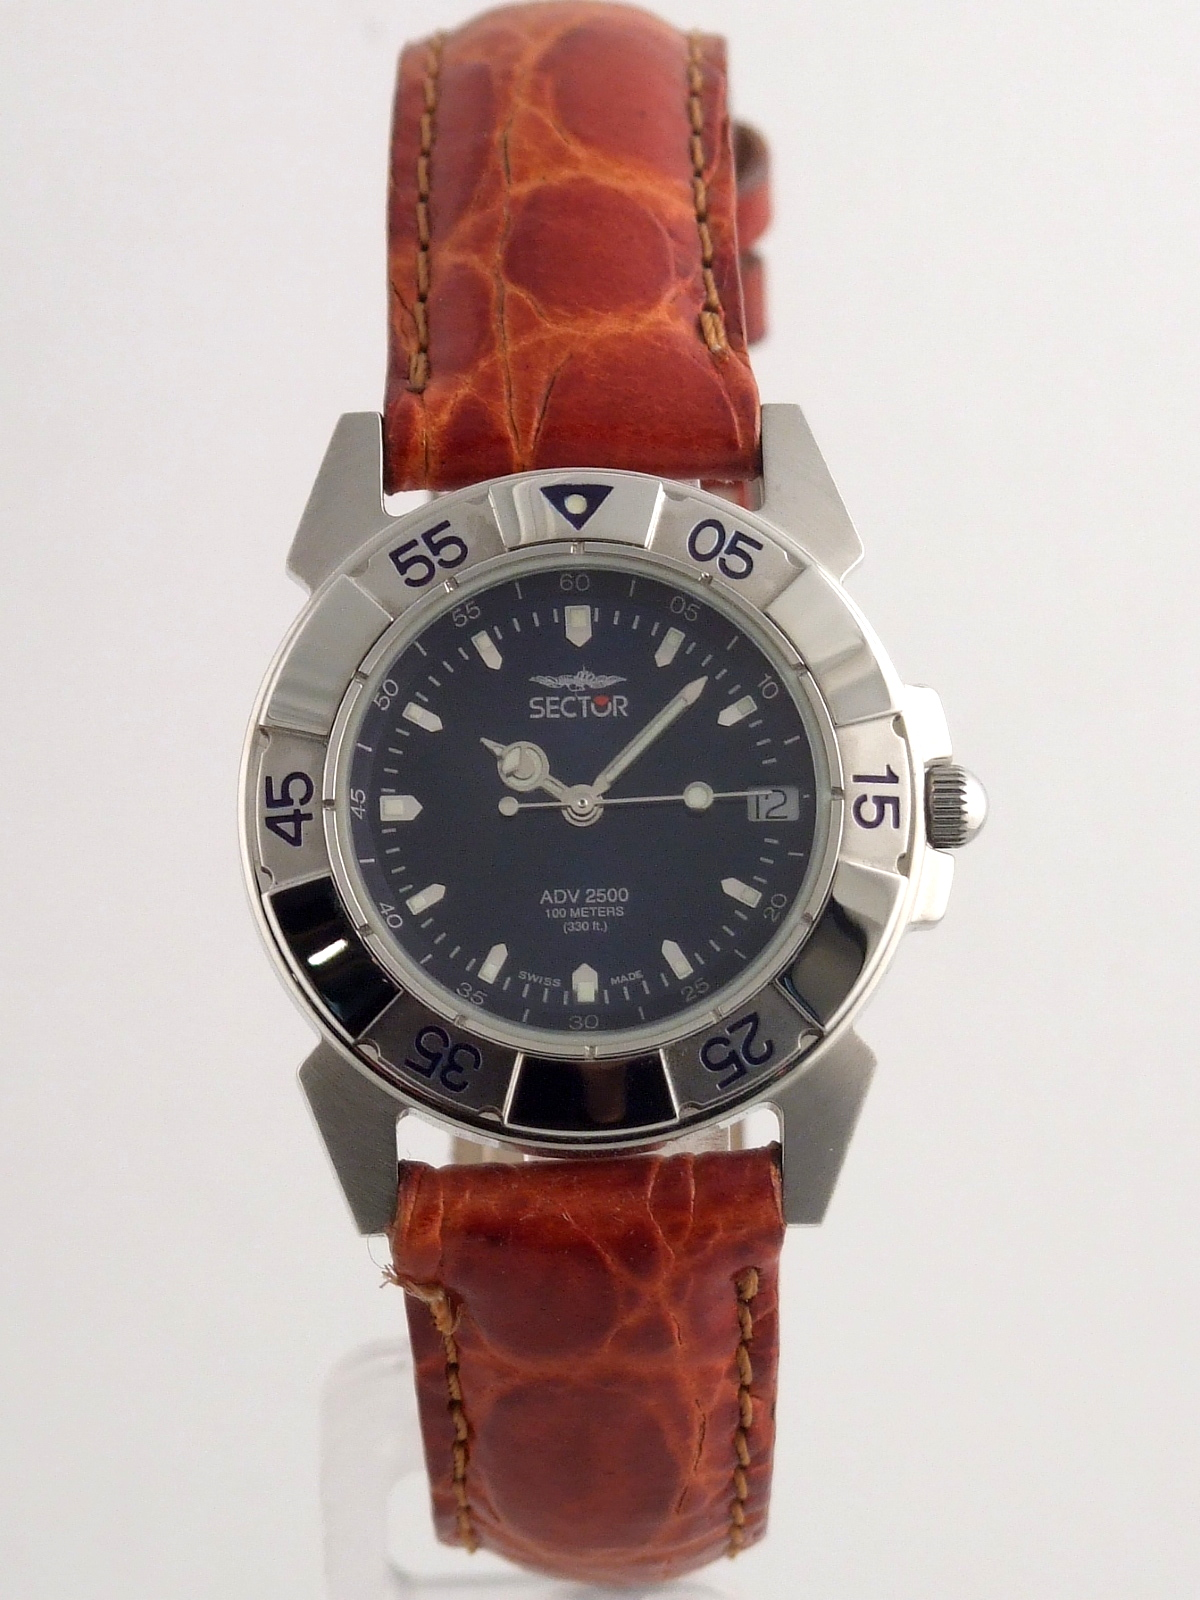 5dbeef29b30 SECTOR ADV 2500 SWISS MADE BLUE DIAL LADIE S WATCH